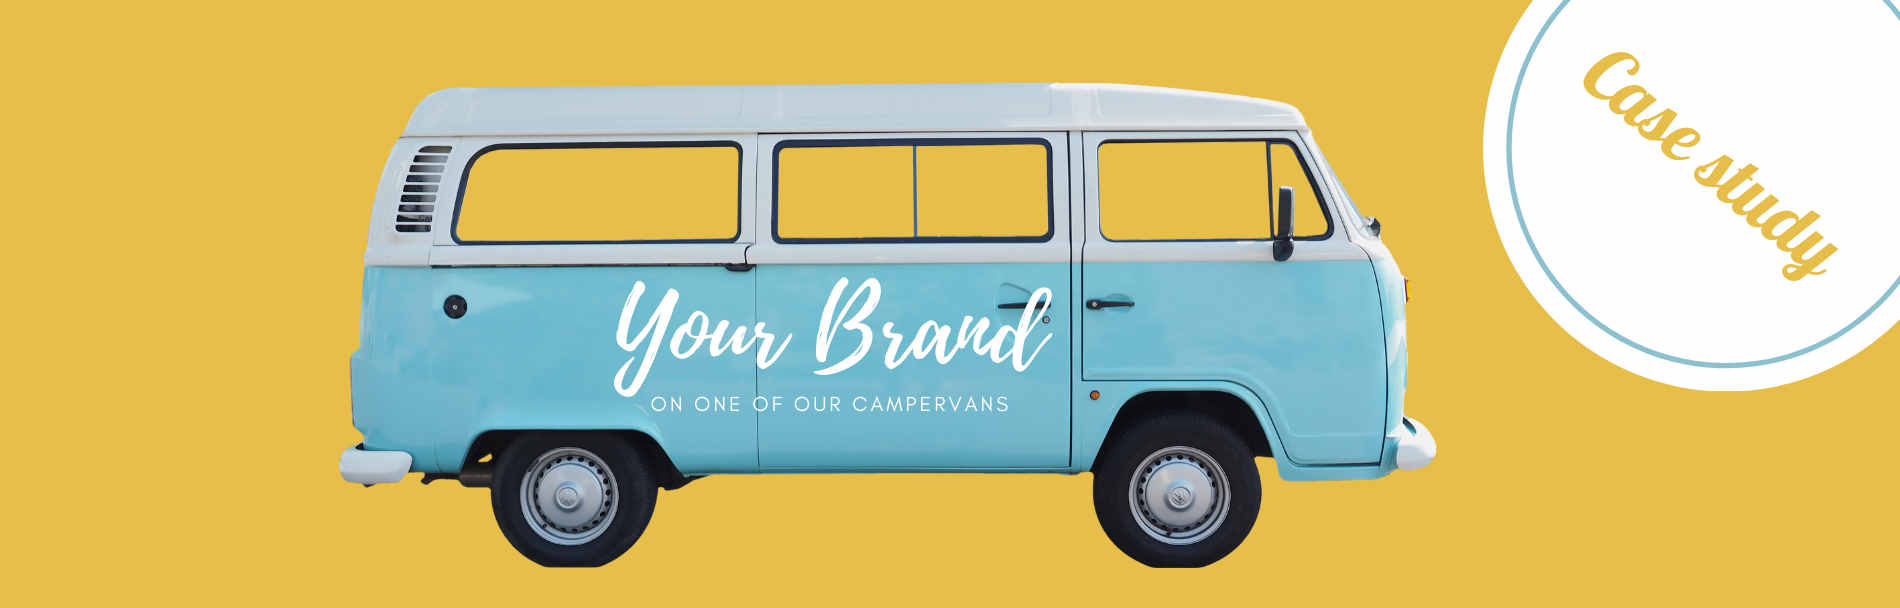 buttercupbus branded campervan hire case study